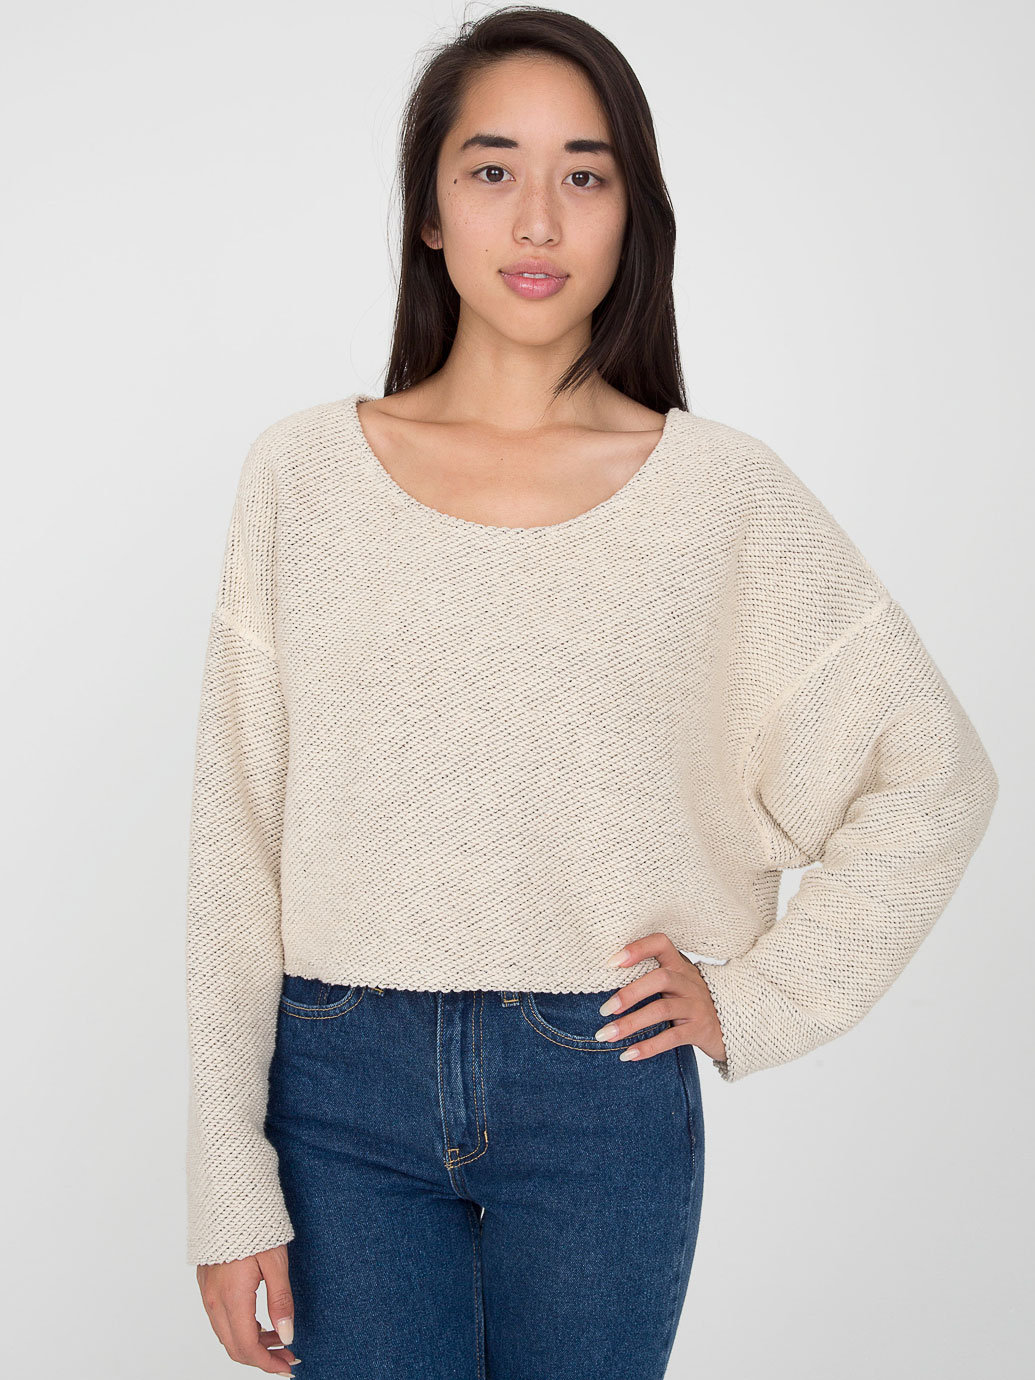 Cropped Reversible Easy Sweater | American Apparel